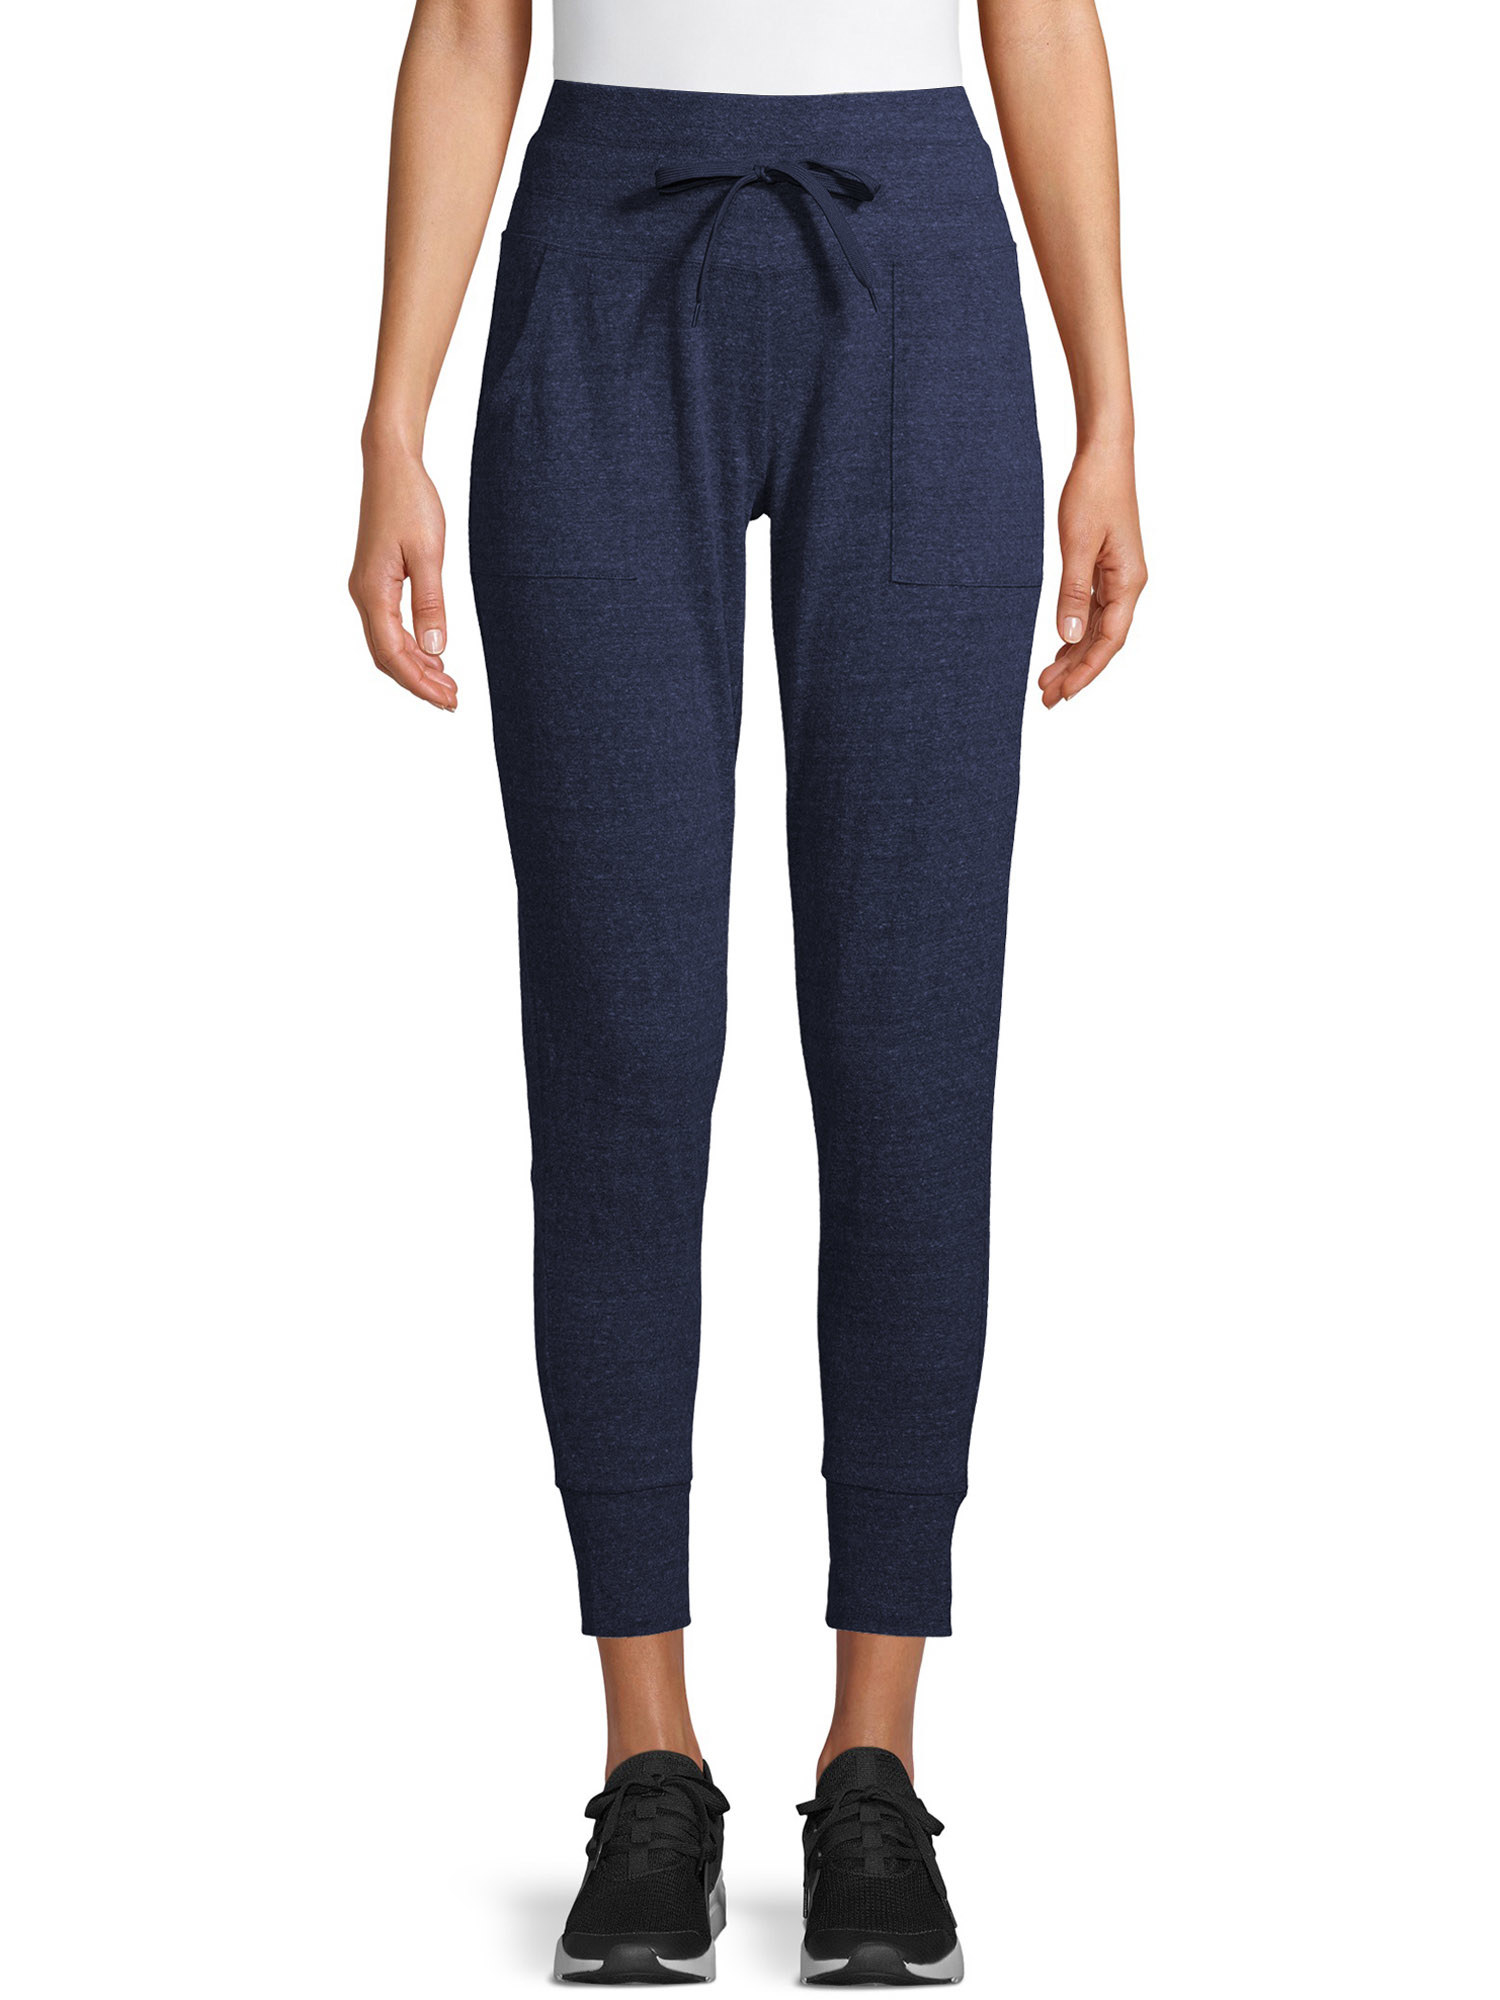 The ankle-length navy blue sweatpants